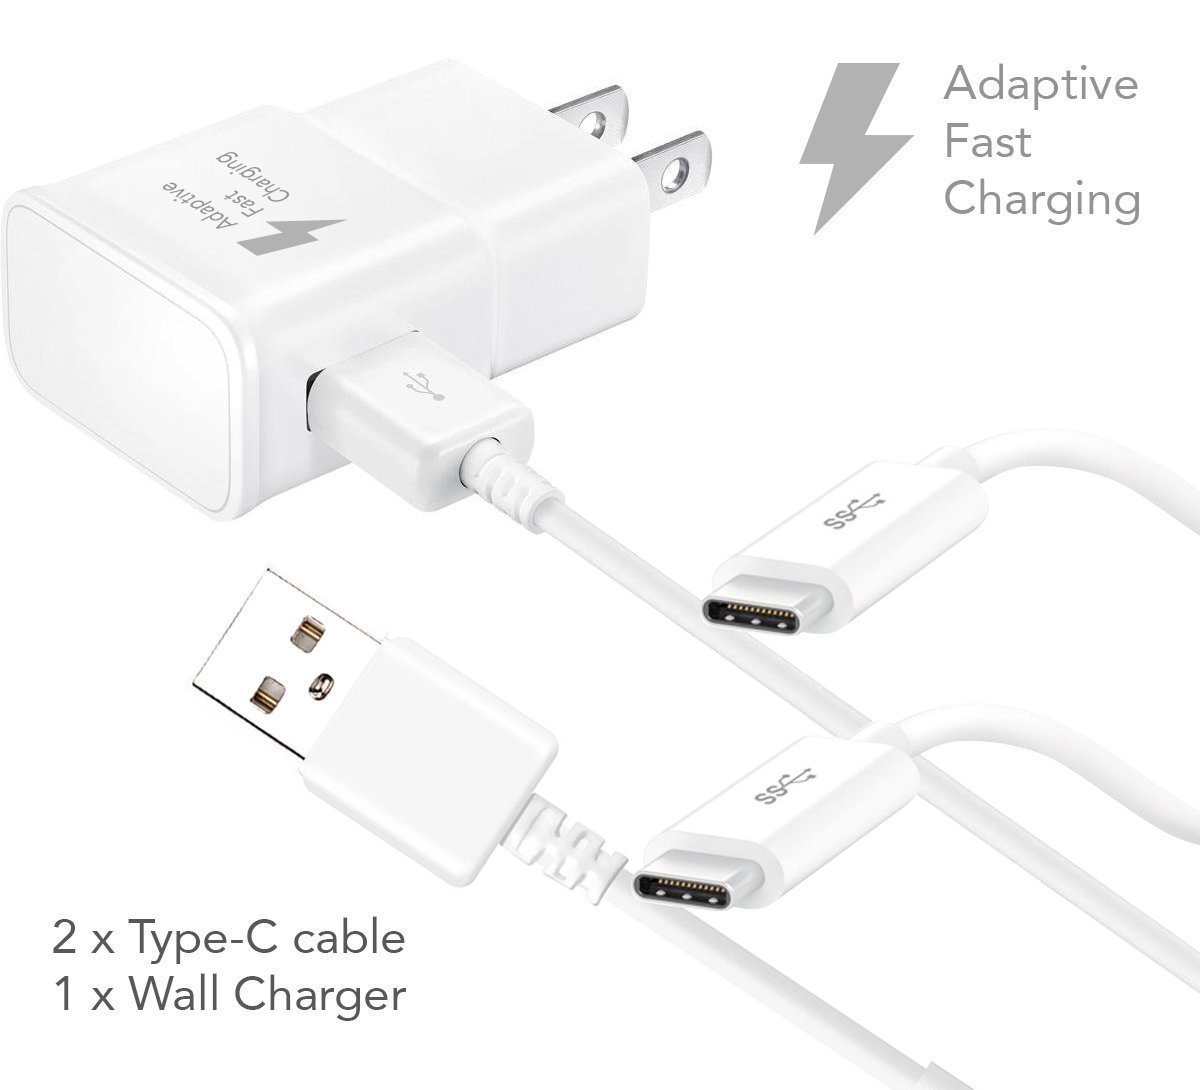 motorola moto z play charger fast type c usb 2 0 cable kit by ixir fast wall charger type c. Black Bedroom Furniture Sets. Home Design Ideas